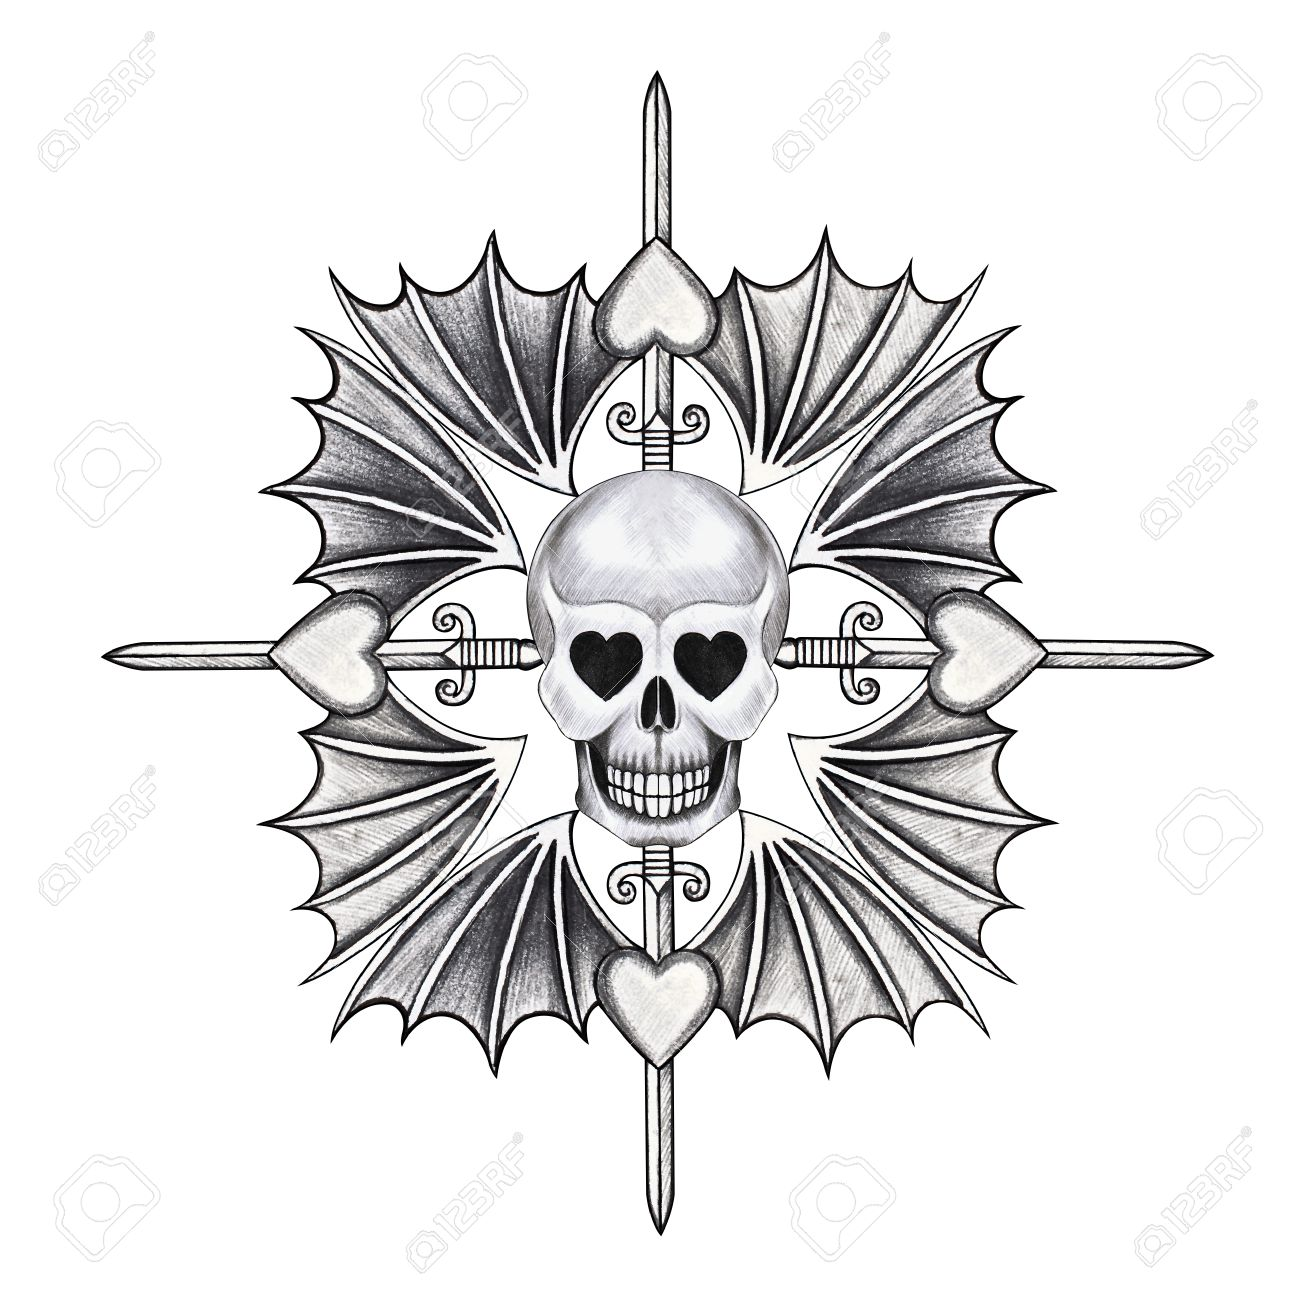 1300x1300 Skull Mix Heart Wing Tattoo Hand Pencil Drawing On Paper Stock